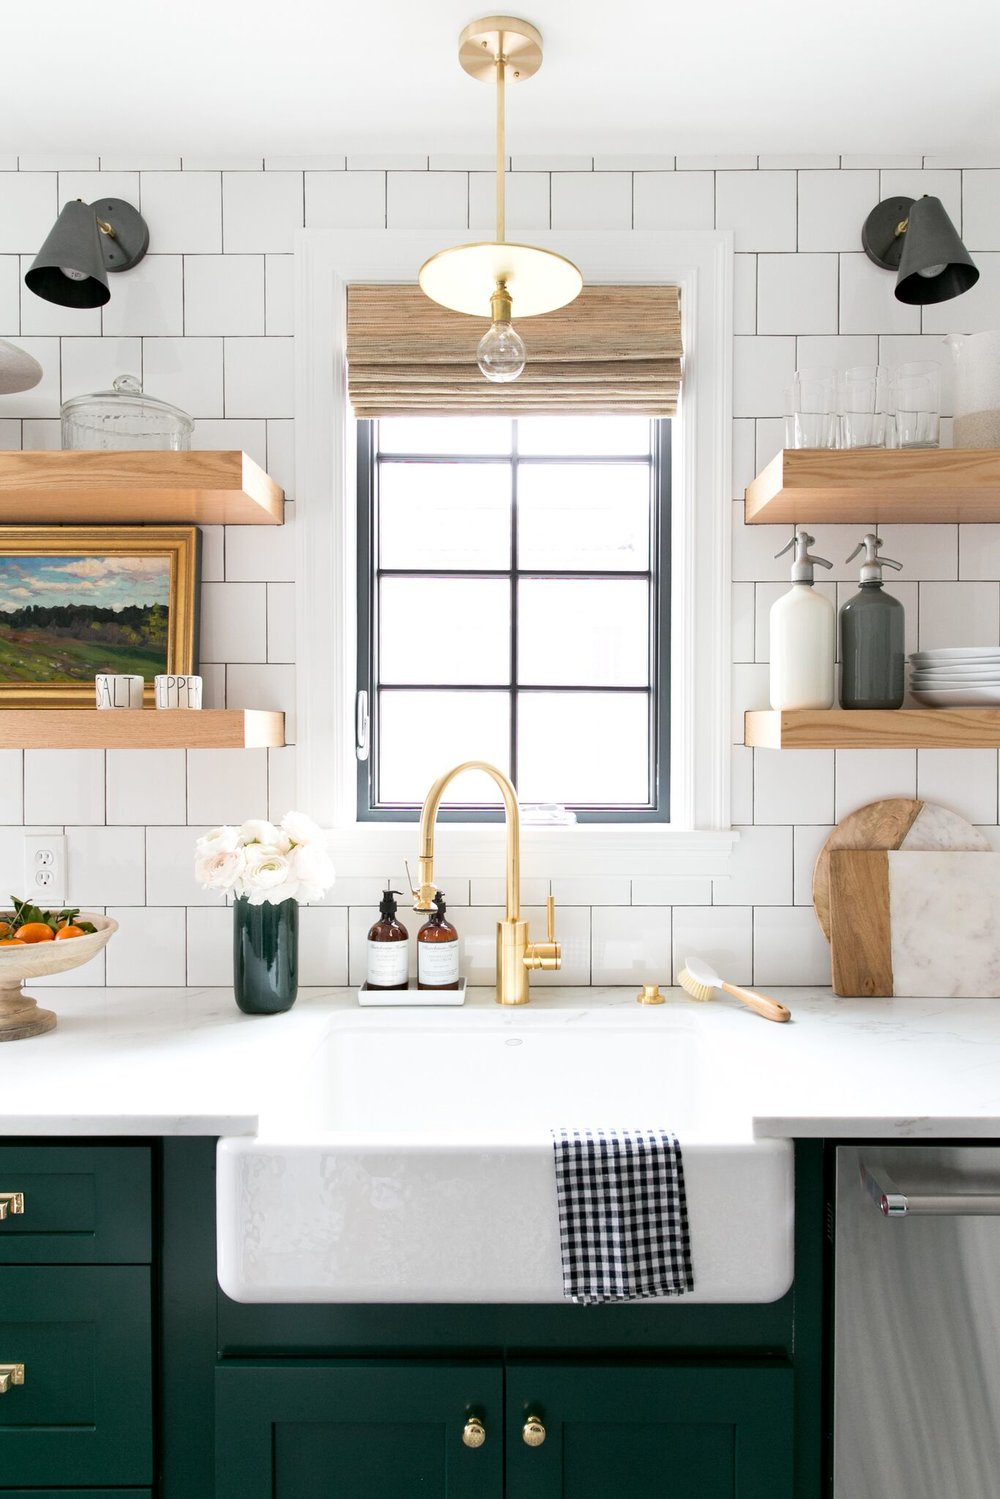 Square Subway Tile : kitchen-with-subway-tile - designwebi.com